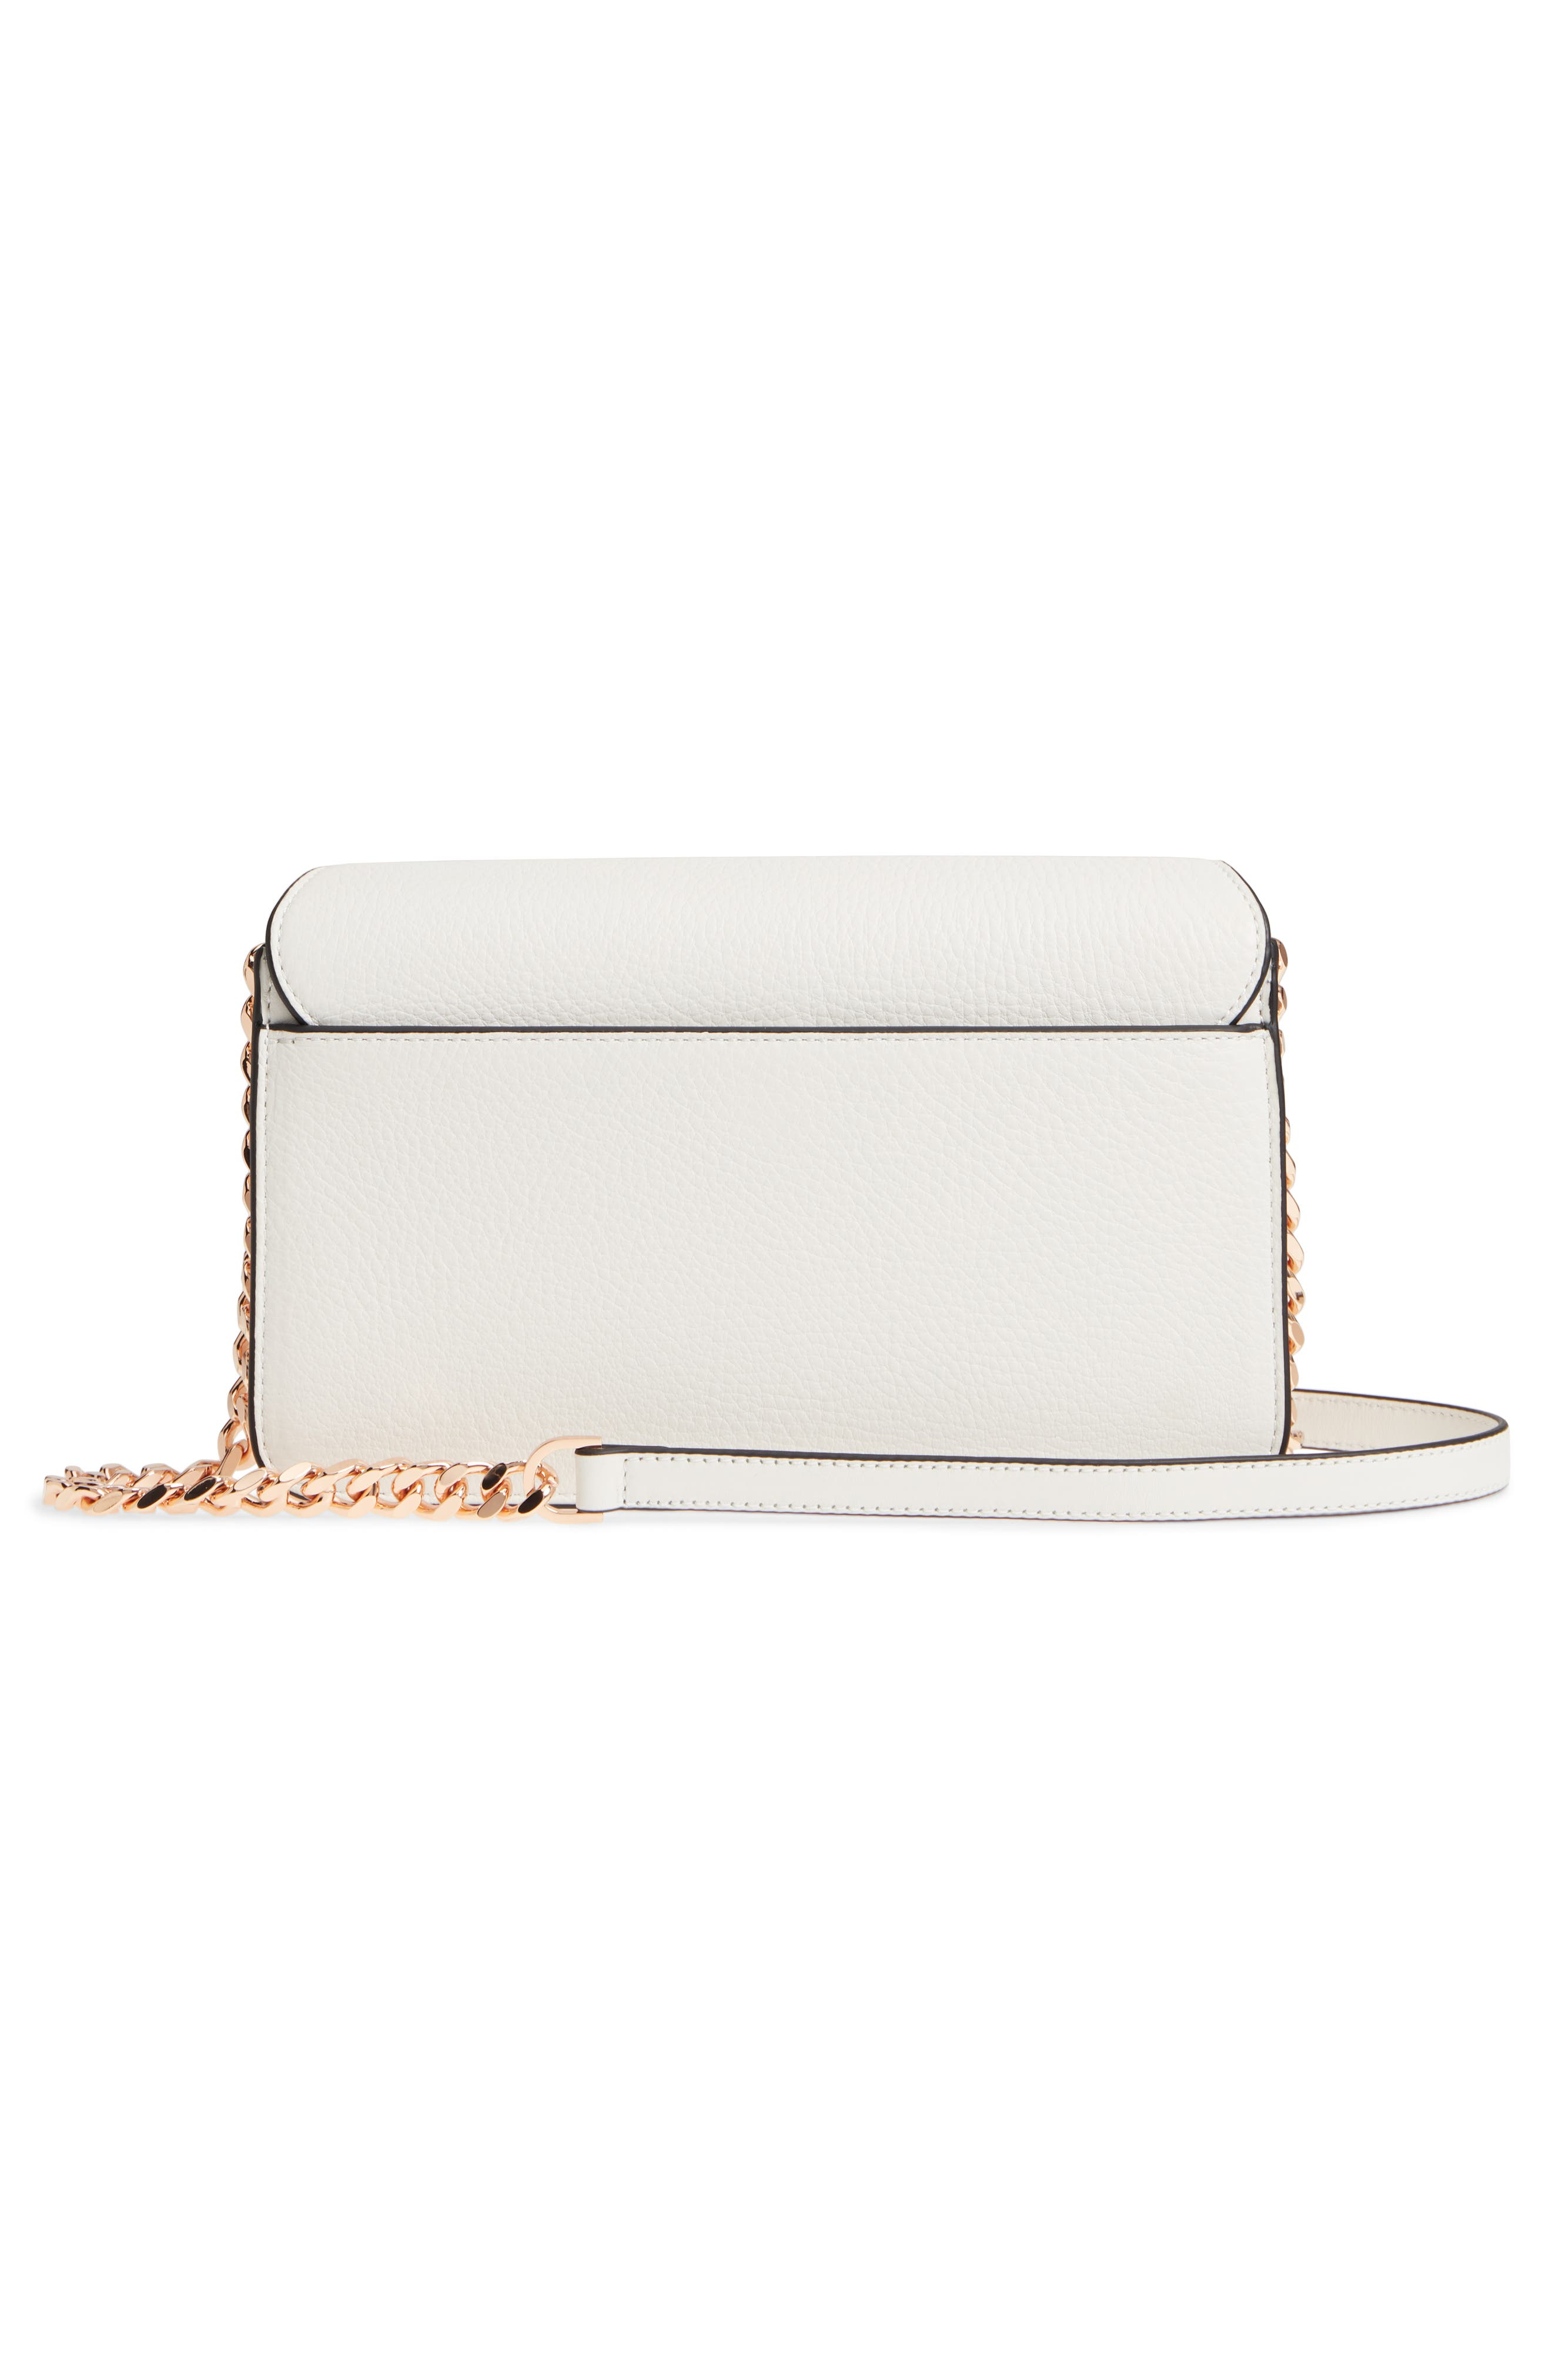 Cortney Nappa Leather Shoulder/Crossbody Bag,                             Alternate thumbnail 3, color,                             WHITE/ ROSE GOLD